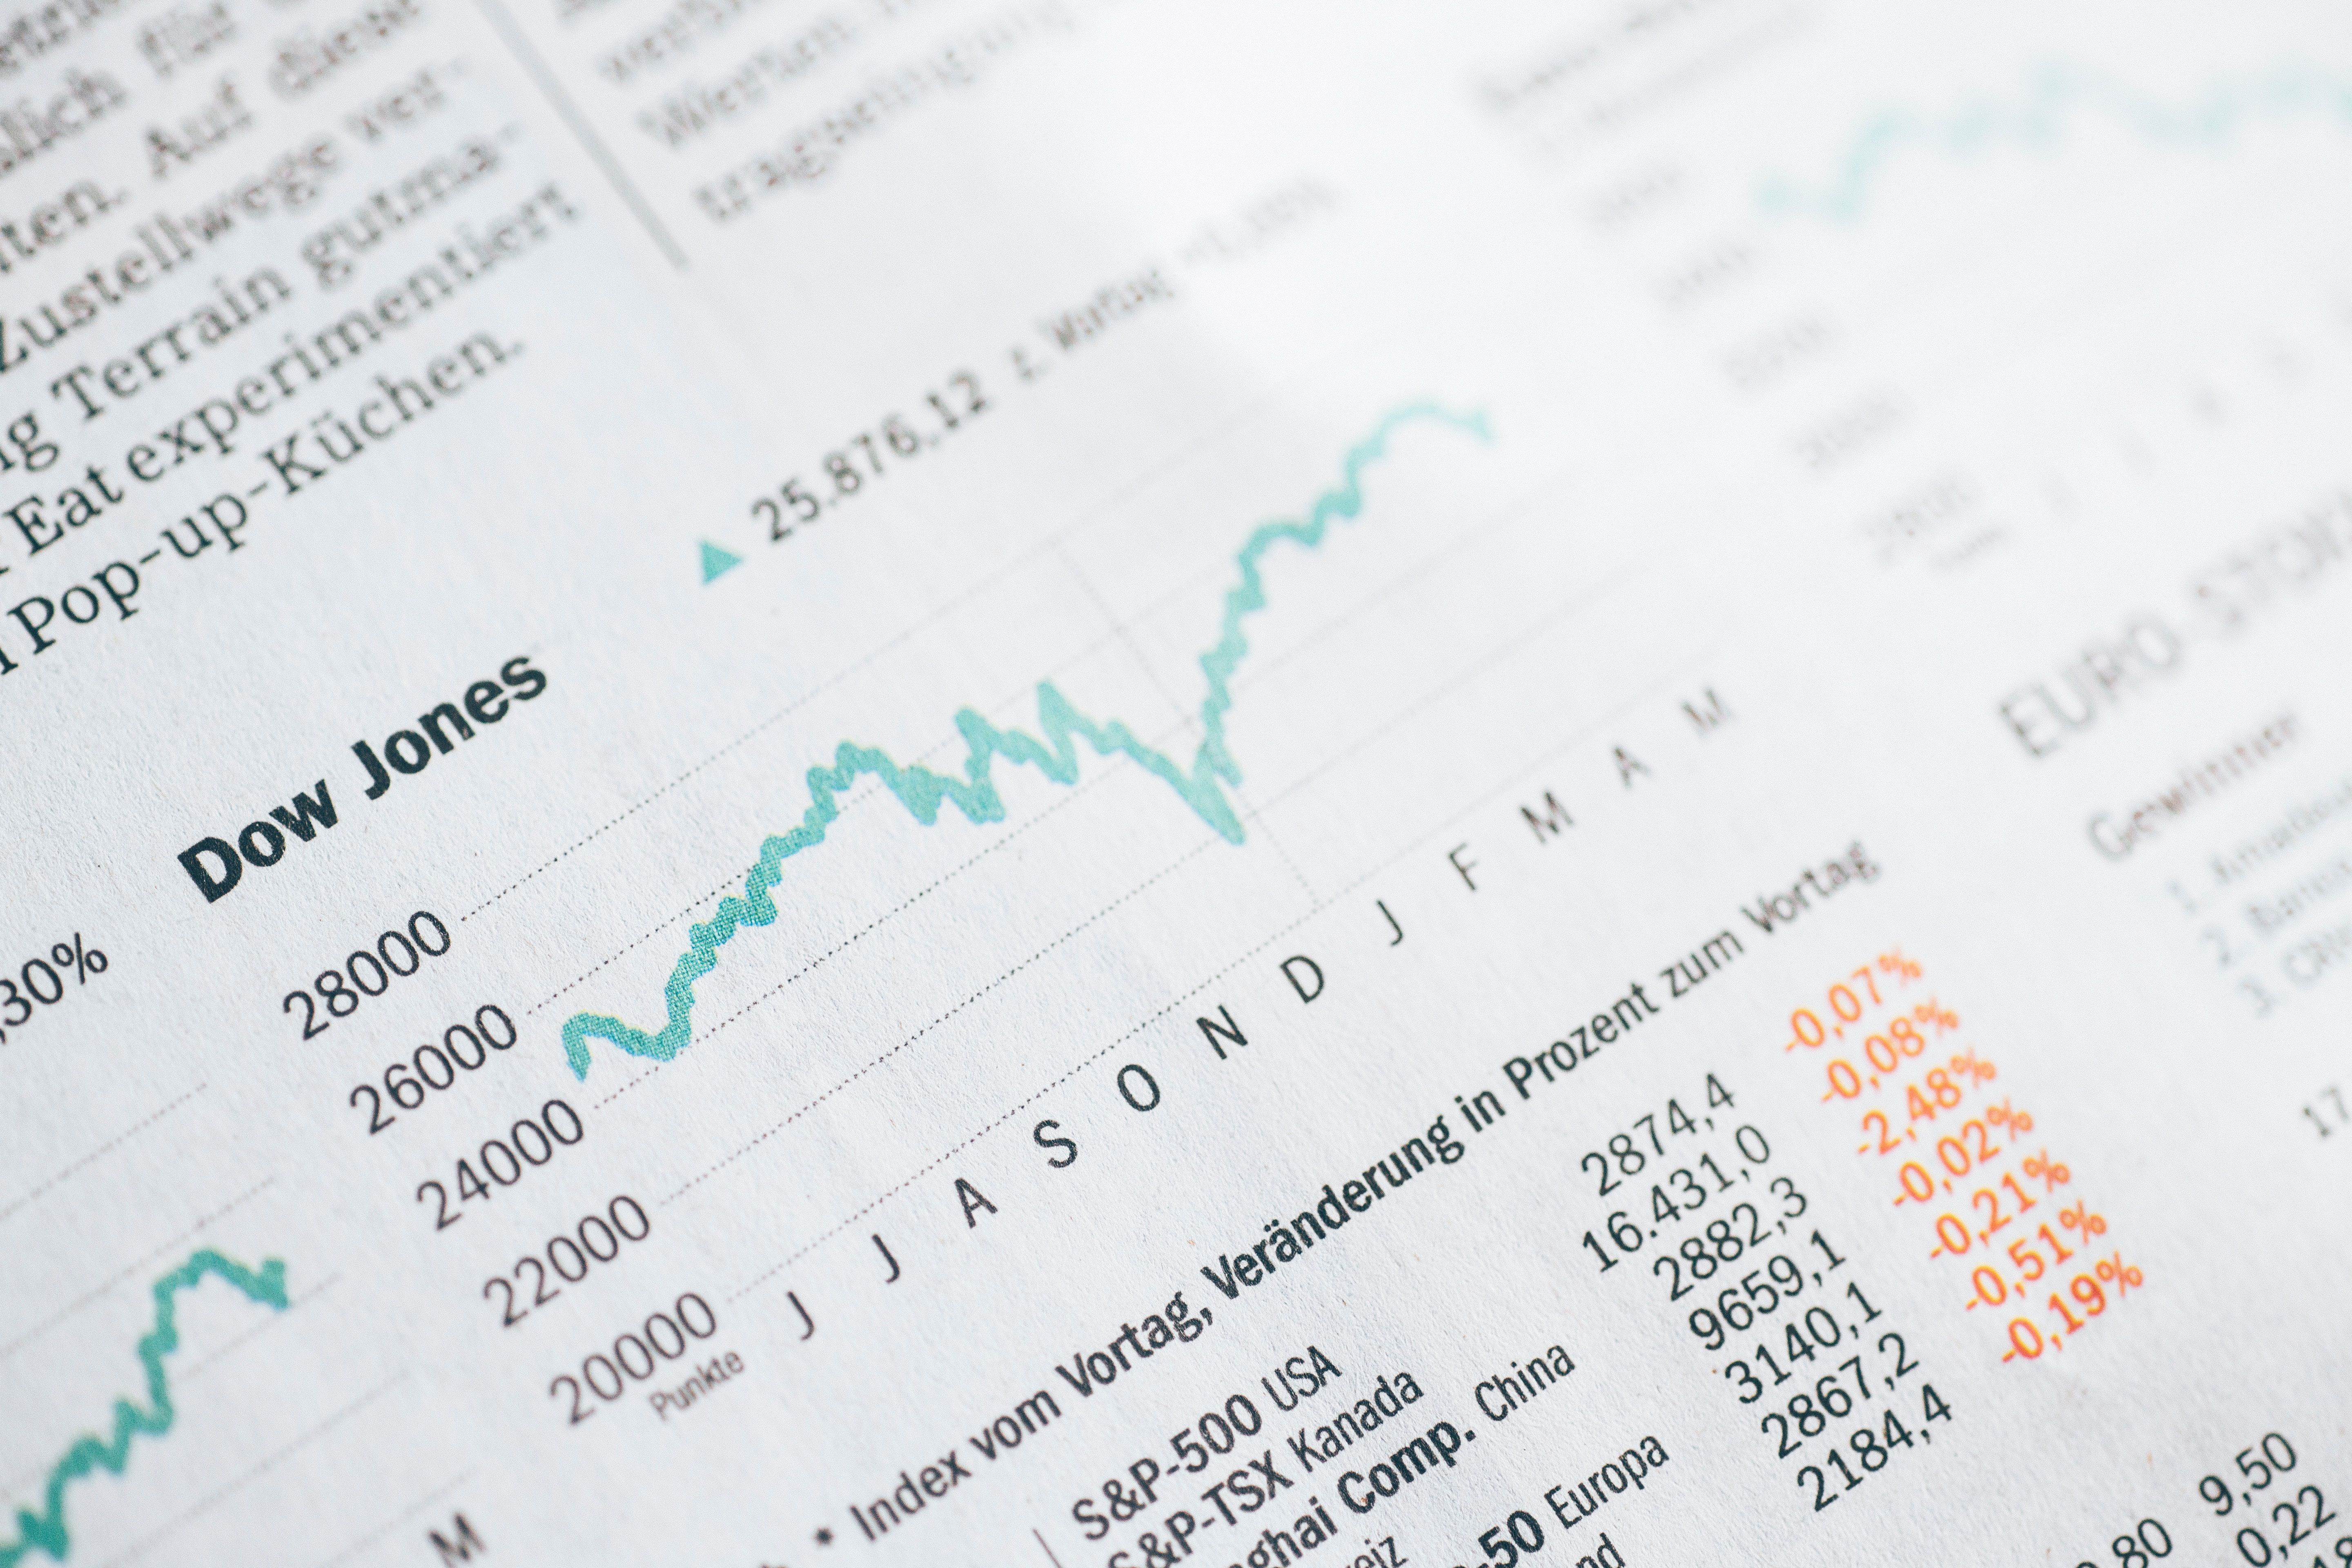 international banking statistics on page with graph